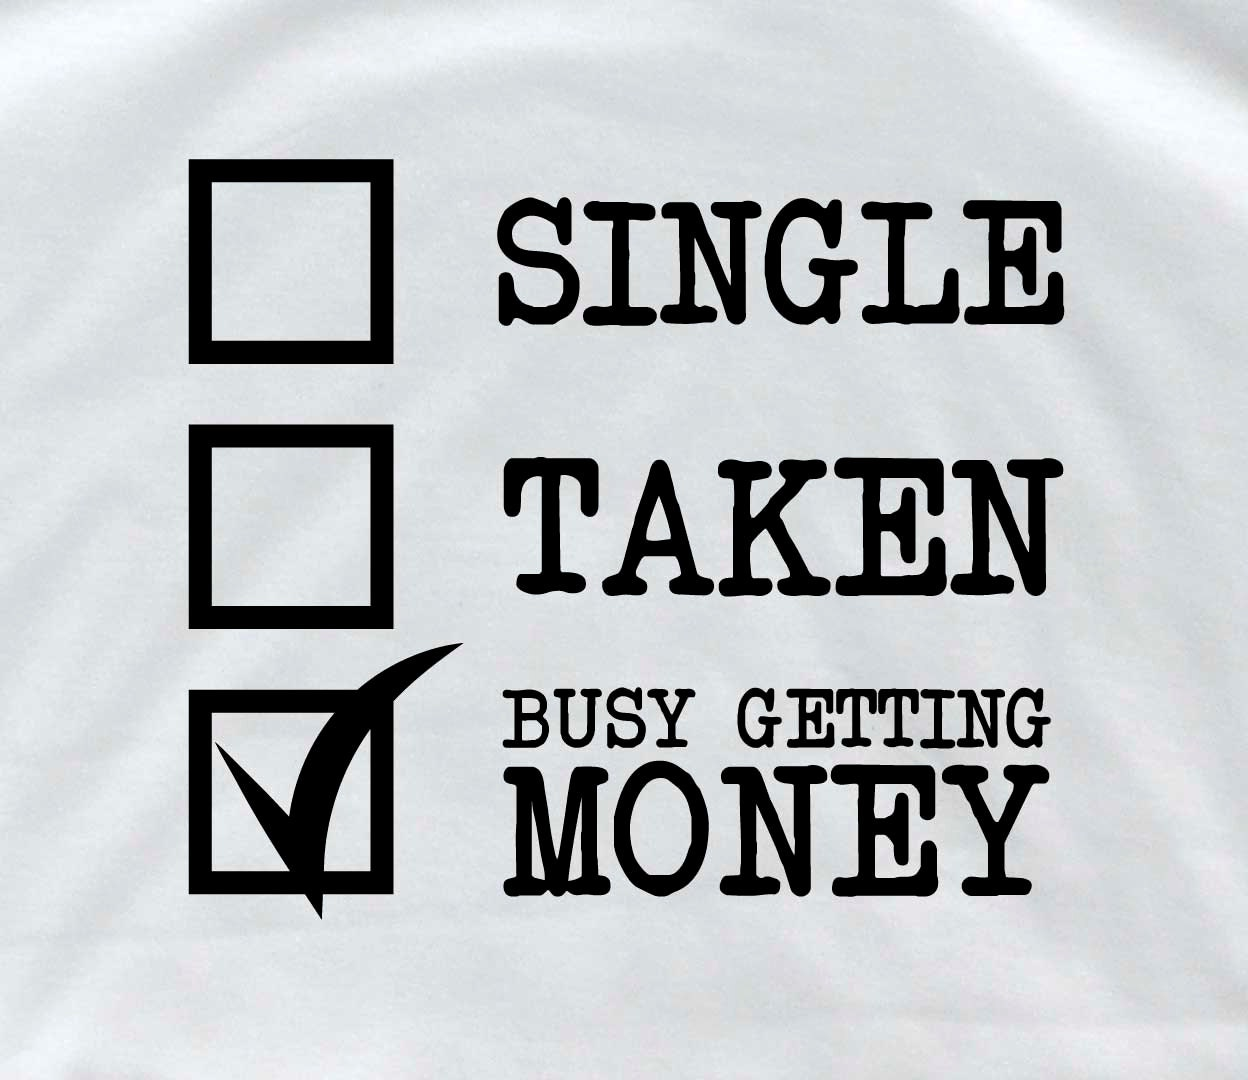 Get Money Quotes: Single Taken Busy Getting Money Personalized T Shirt Single T